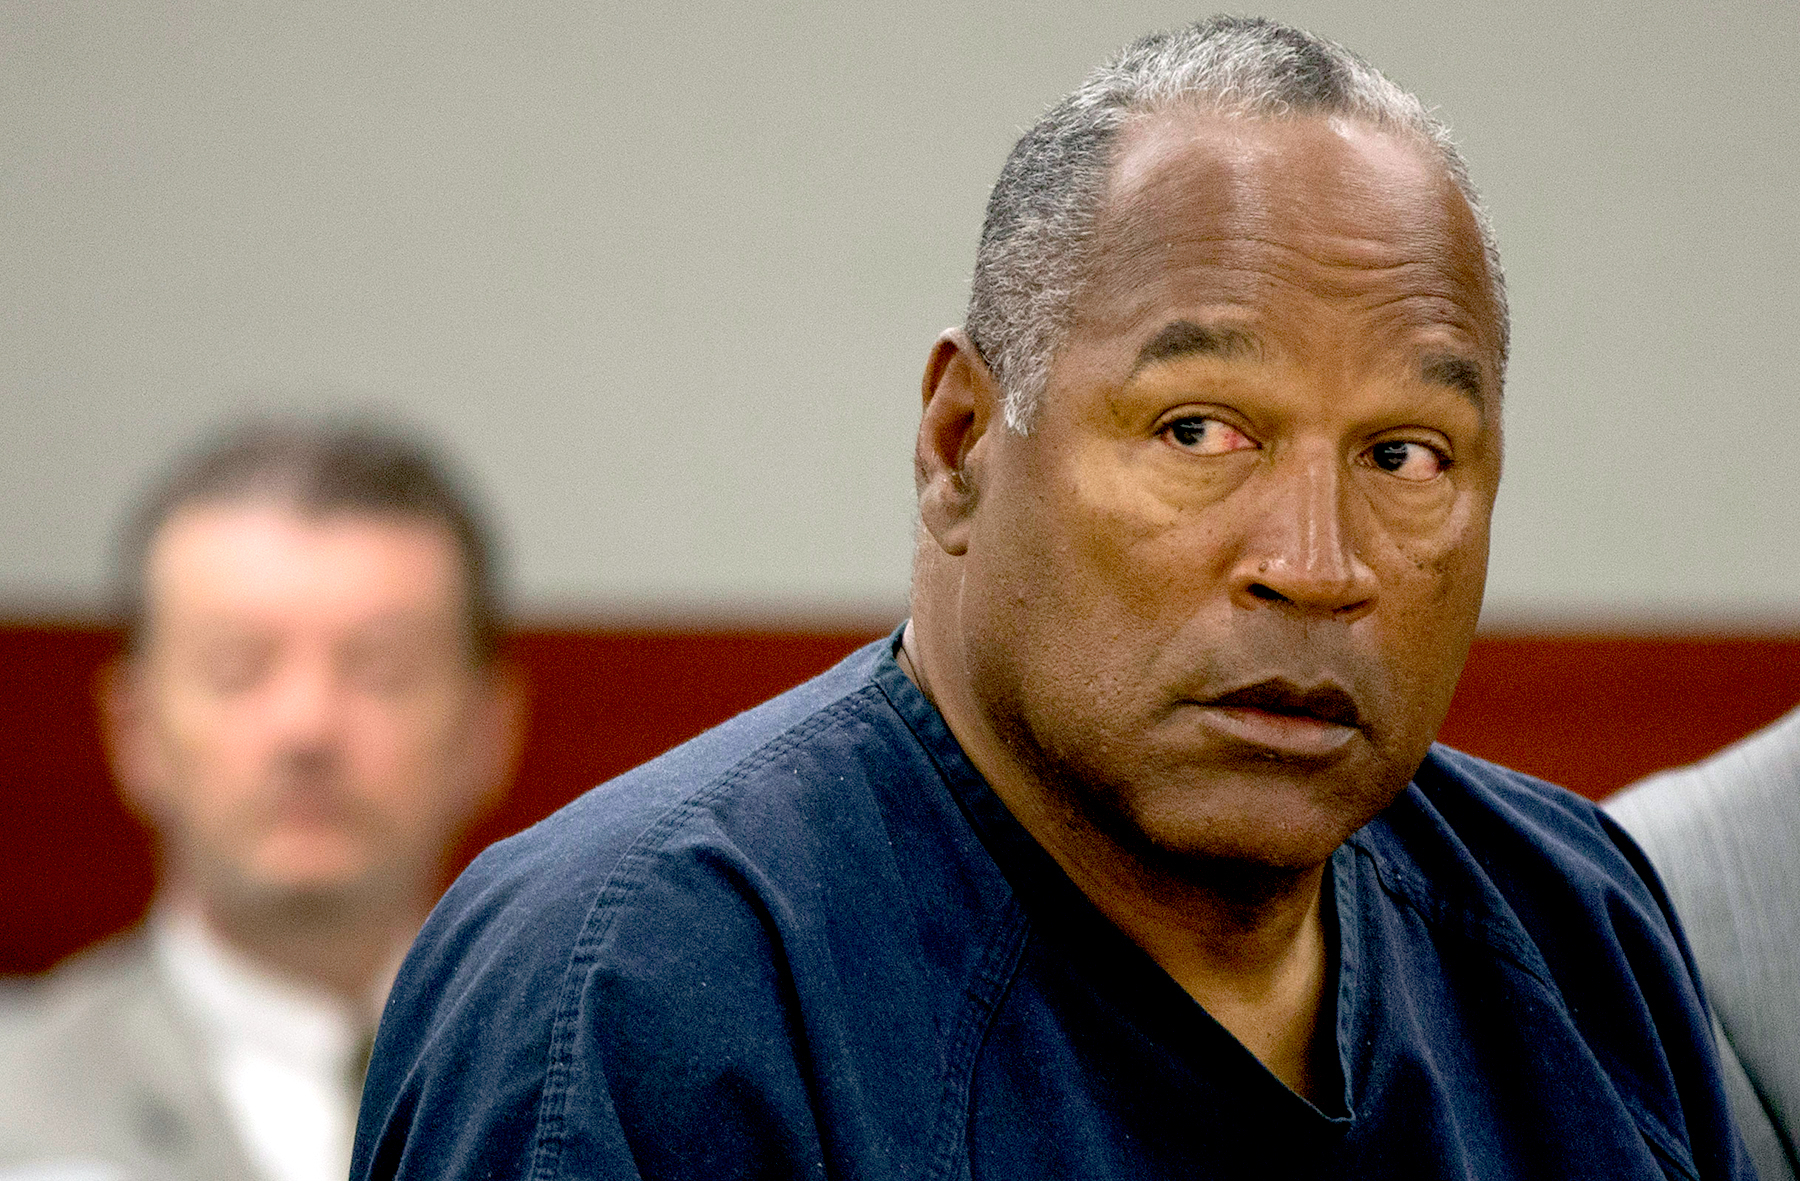 O.J. Simpson listens as his defense attorney, Ozzie Fumo, questions witness David Cook during an evidentiary hearing in Clark County District Court May 16, 2013 in Las Vegas, Nevada.